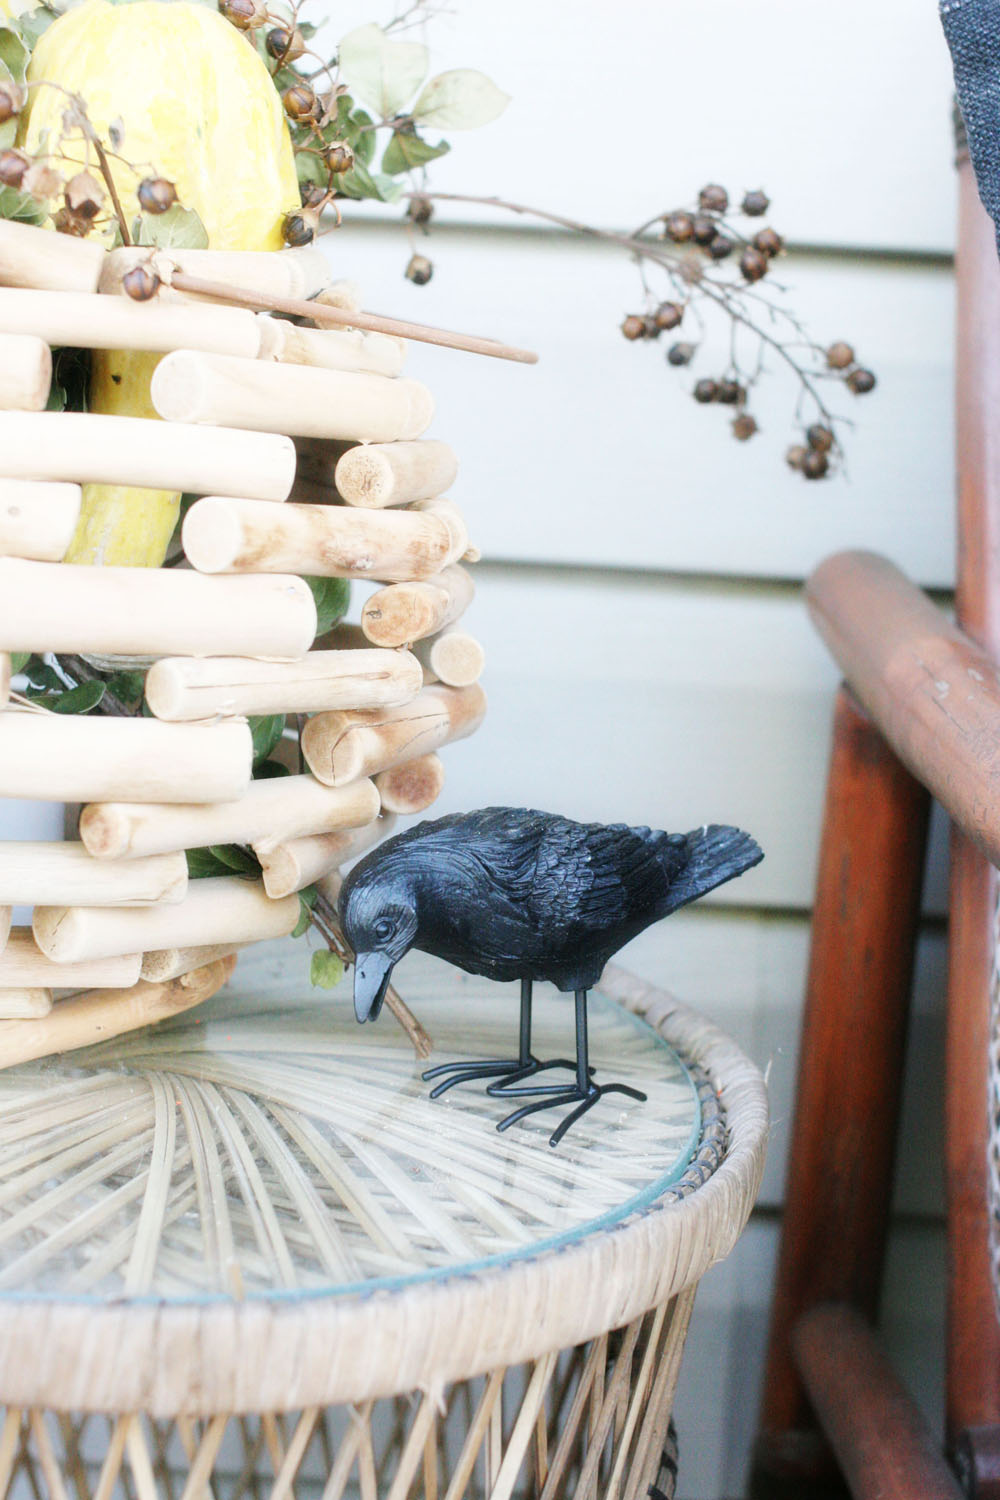 A decorative crow figurine used as a DIY outdoor halloween decoration